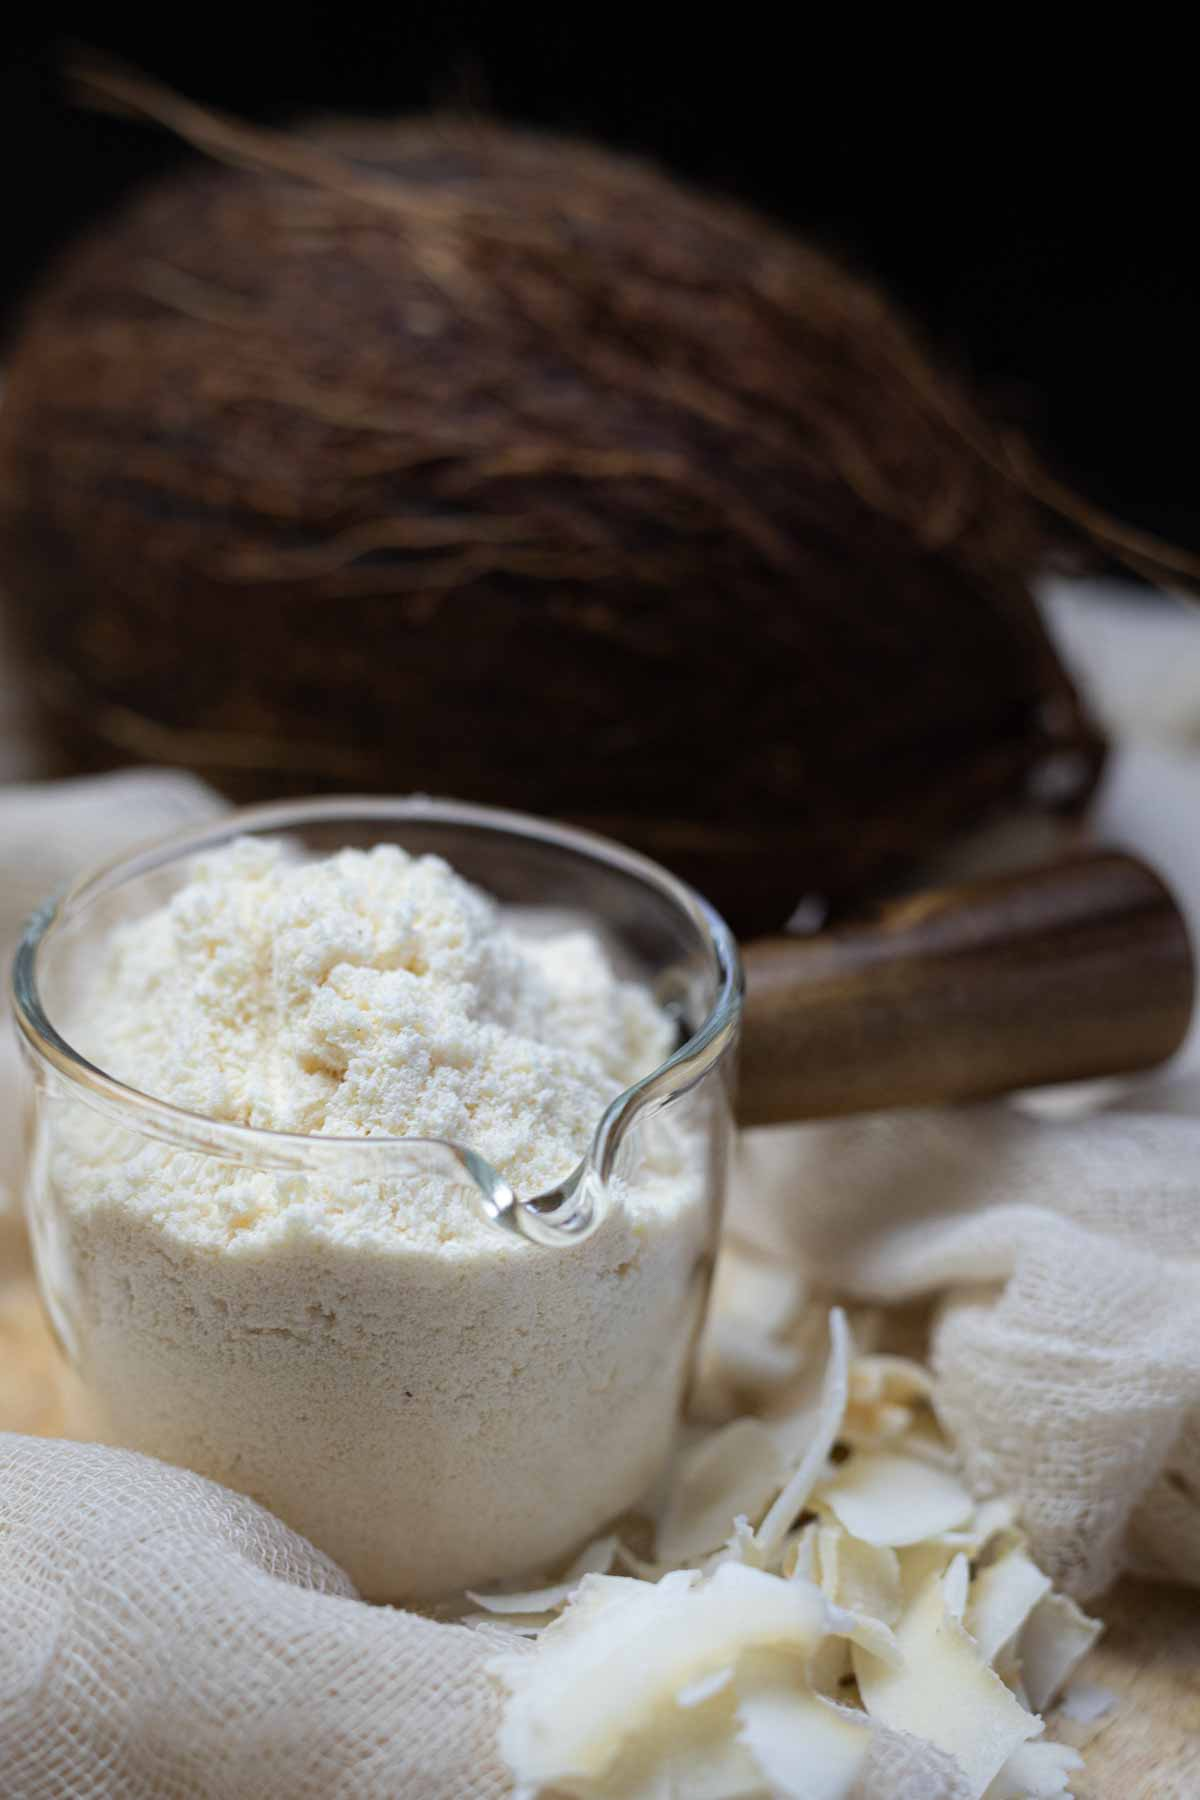 Coconut Flour for Keto flour substitute in a glass jug